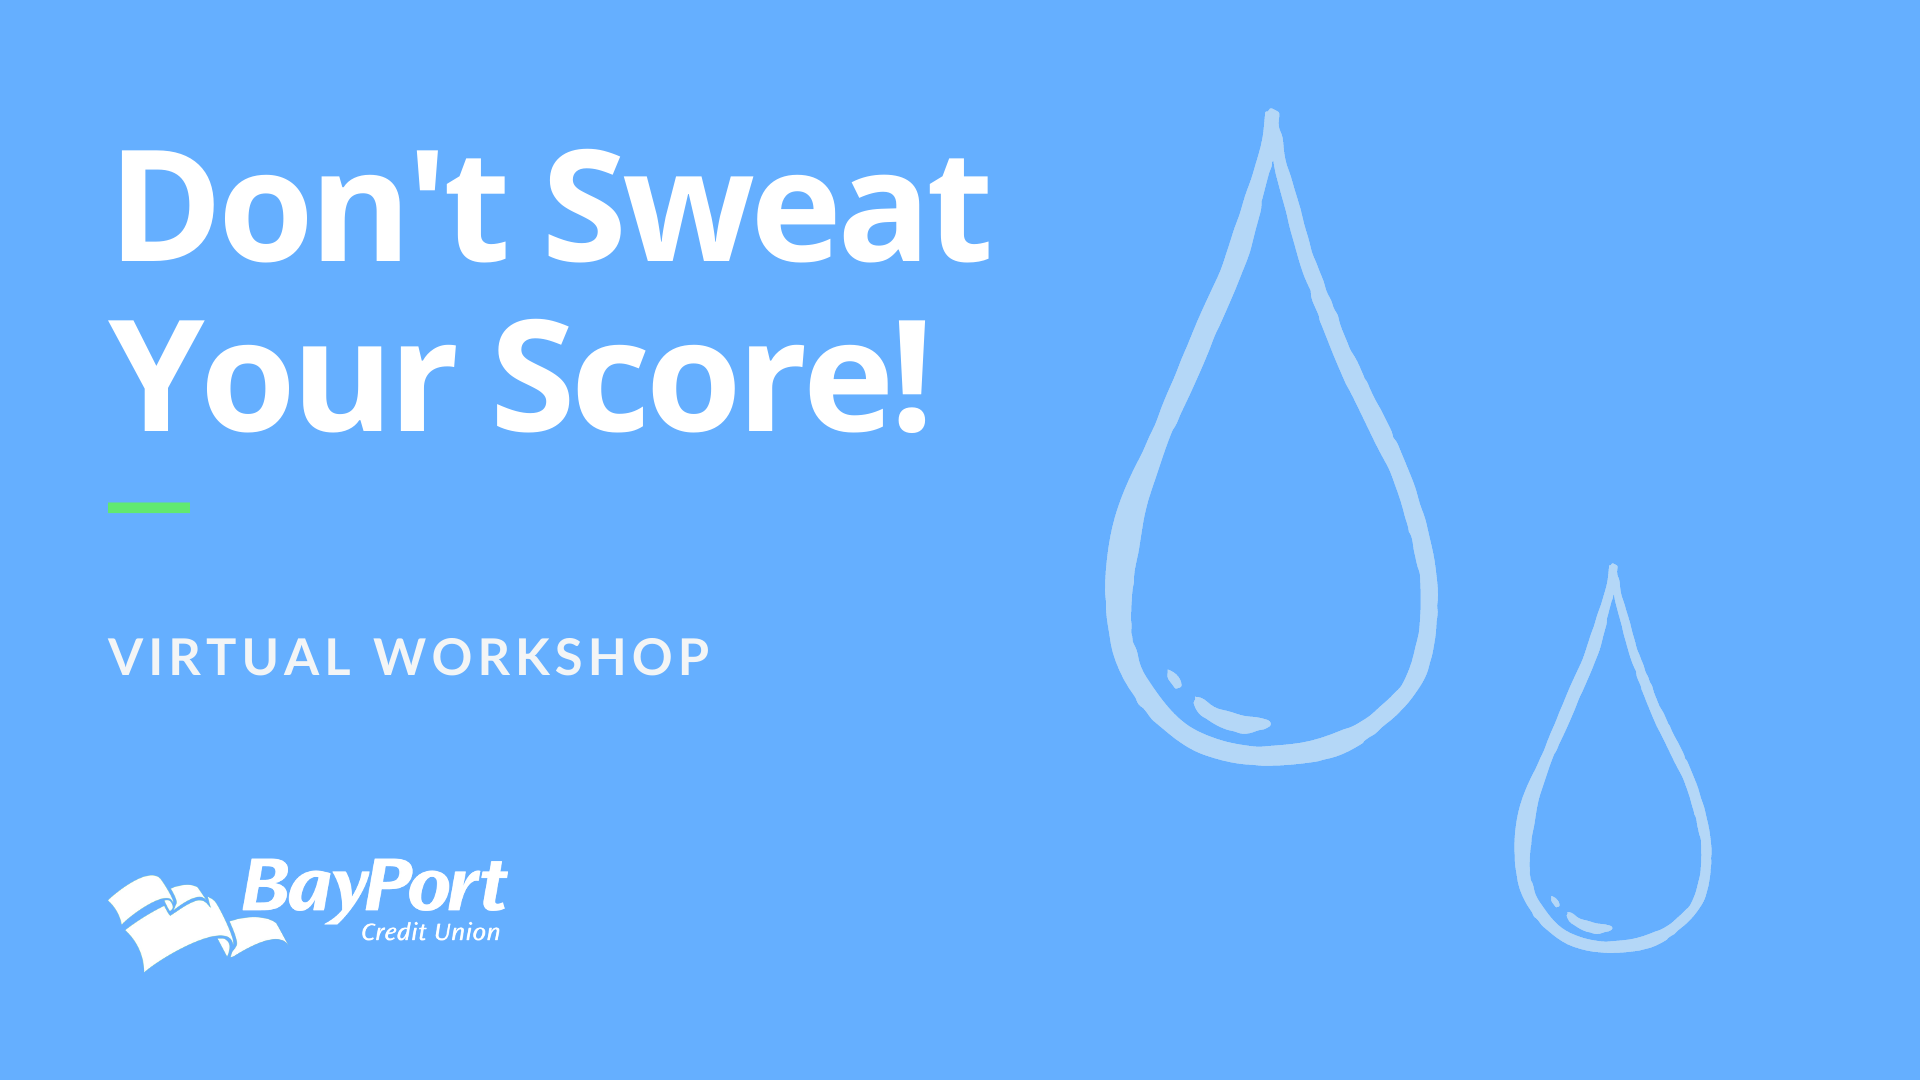 Don't Sweat Your Score